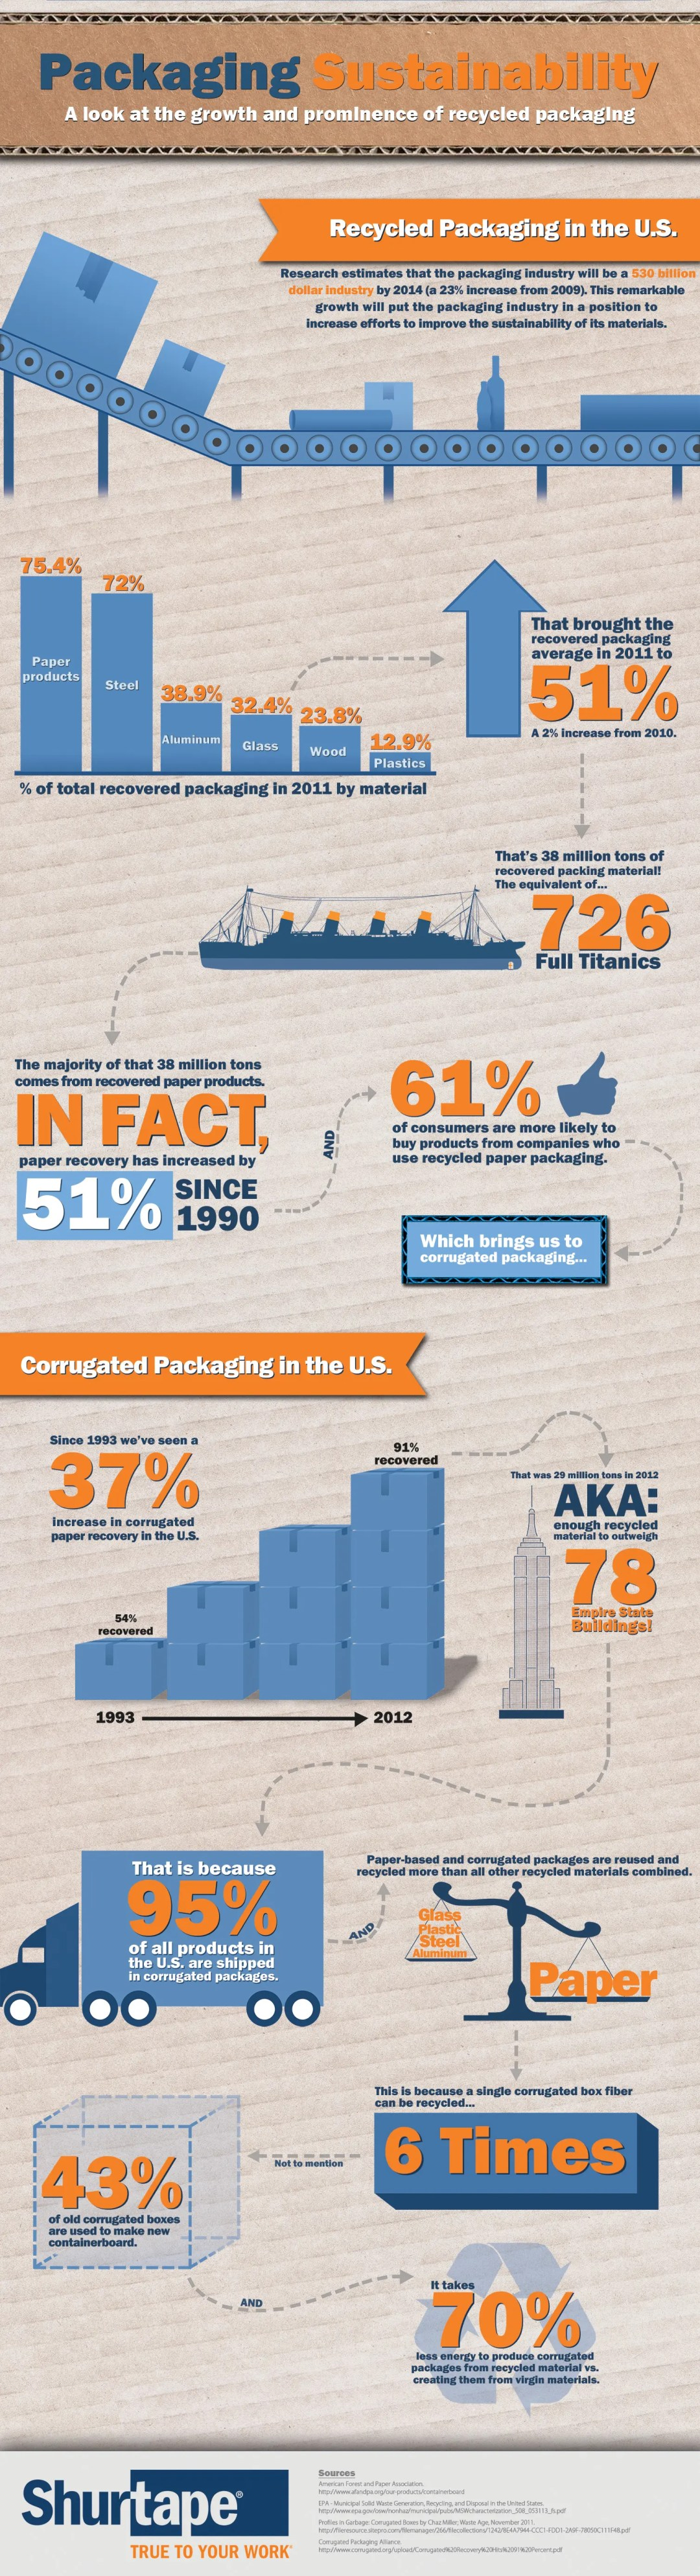 Infographic - Packaging Sustainability